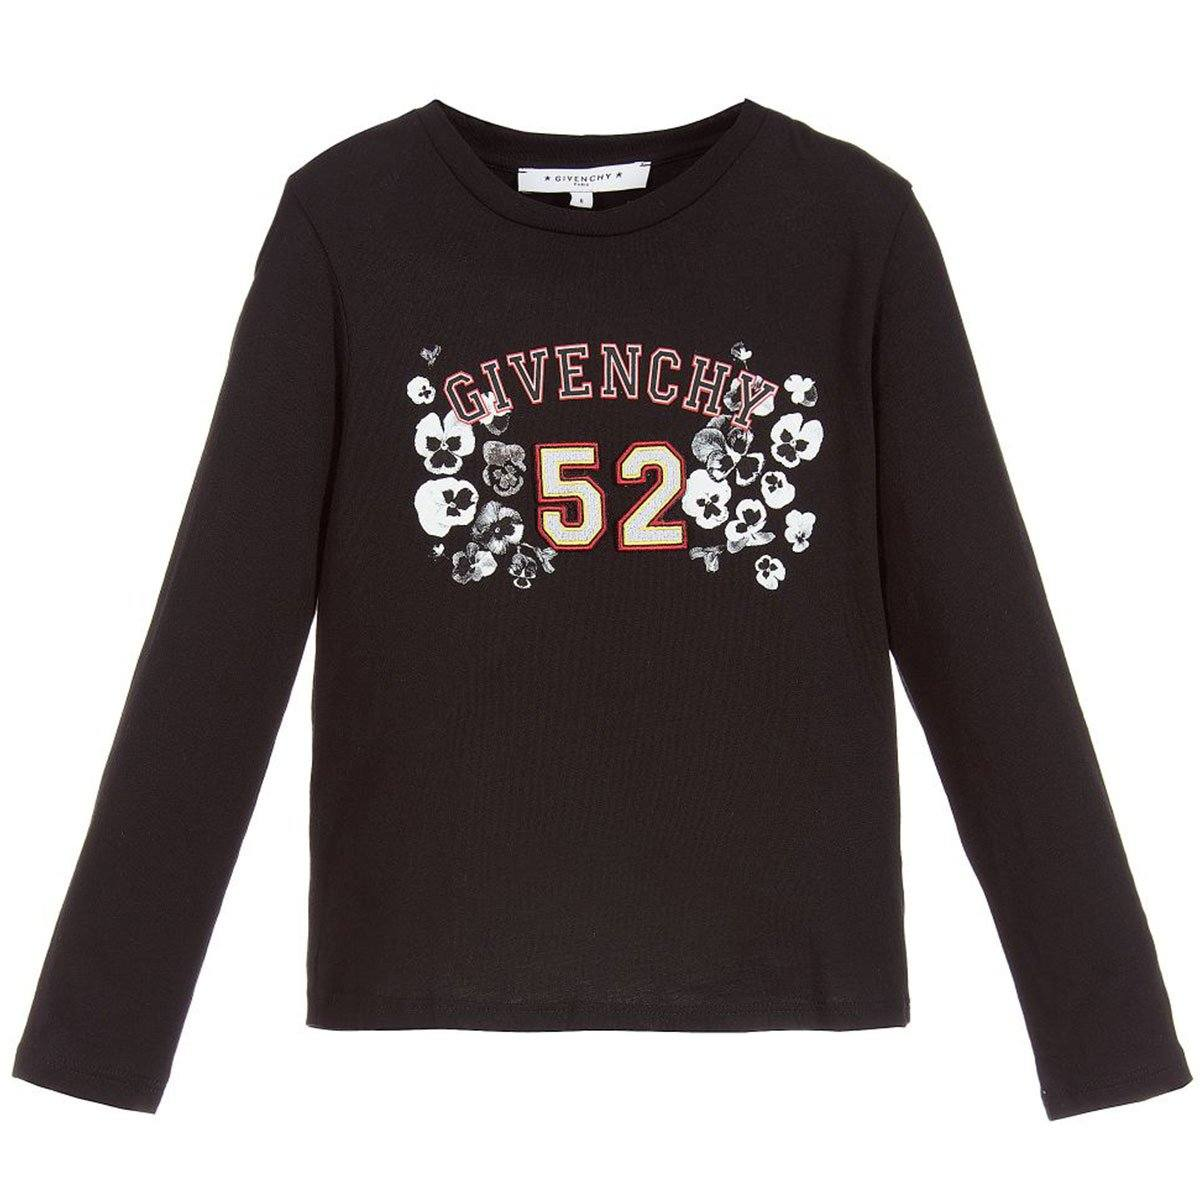 22609df877884 Givenchy Flower Printed Long Sleeves T-Shirt For Girls, Black – Angels